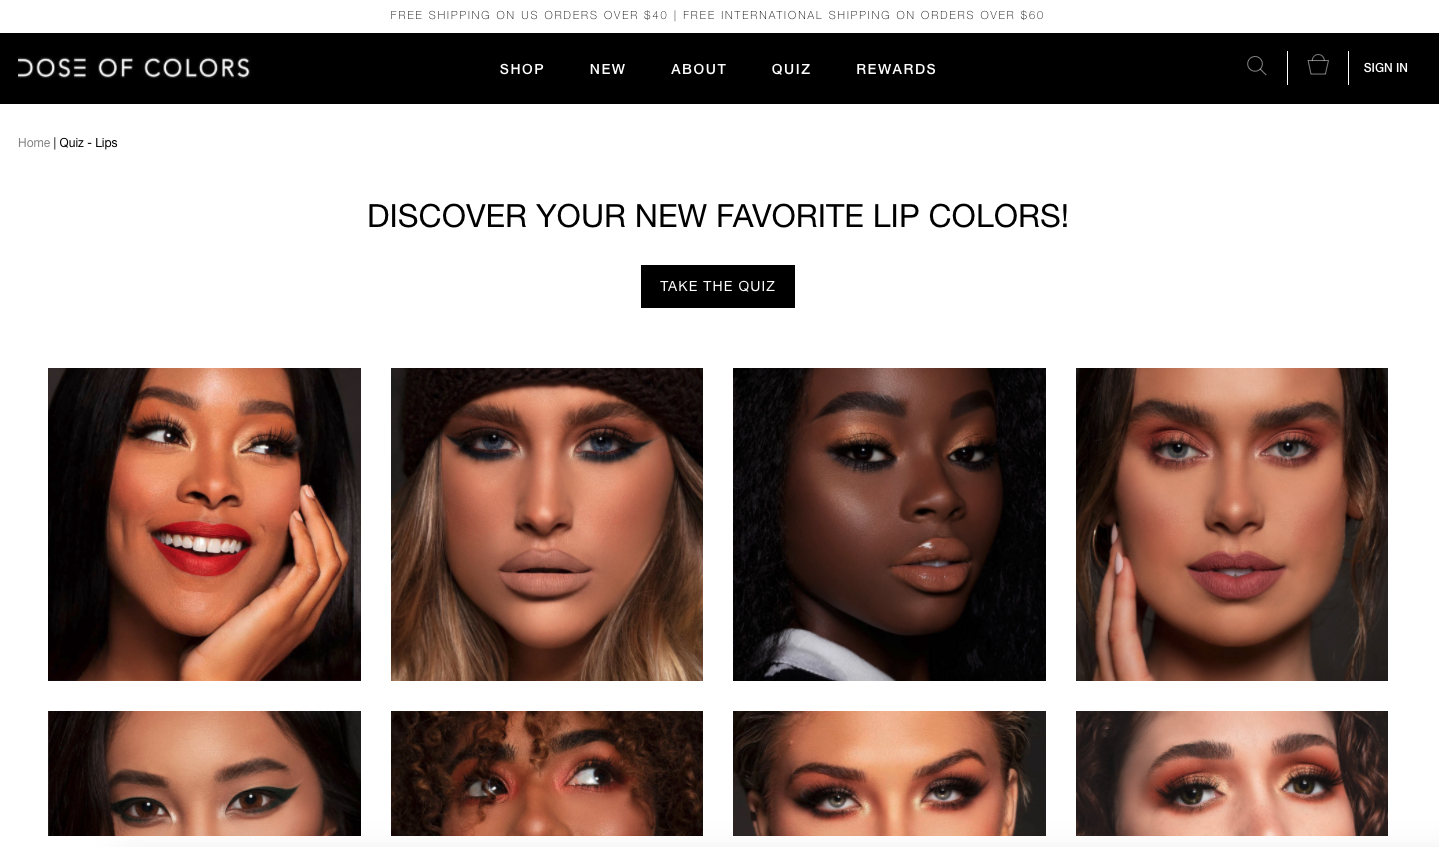 Loyalty in Beauty and Cosmetics - Dose of Color lip color quiz